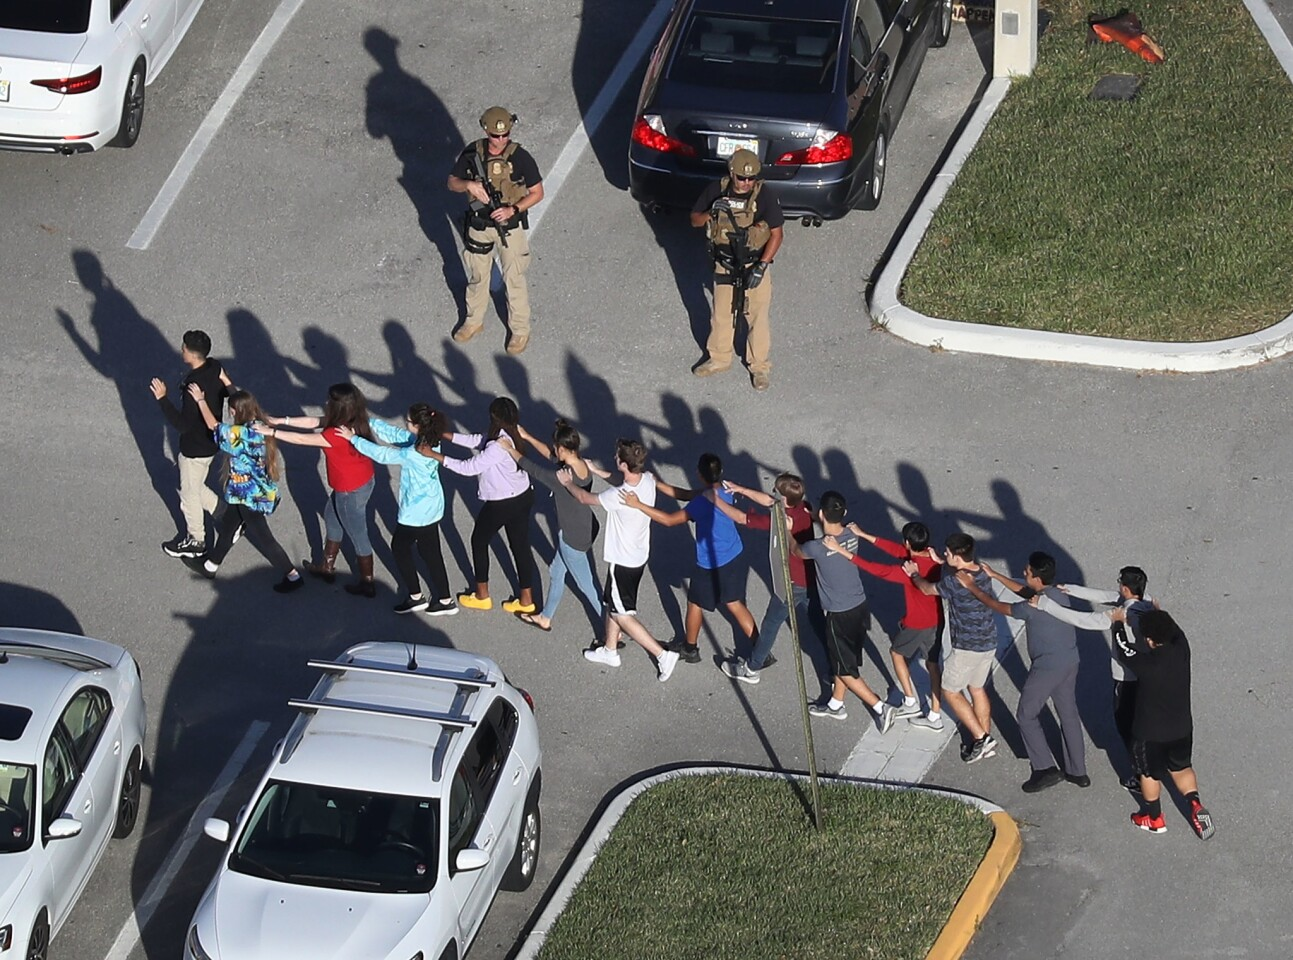 Students are brought out of the Marjory Stoneman Douglas High School after a shooting at the school that killed 17 people on Feb. 14, 2018 in Parkland, Fla.